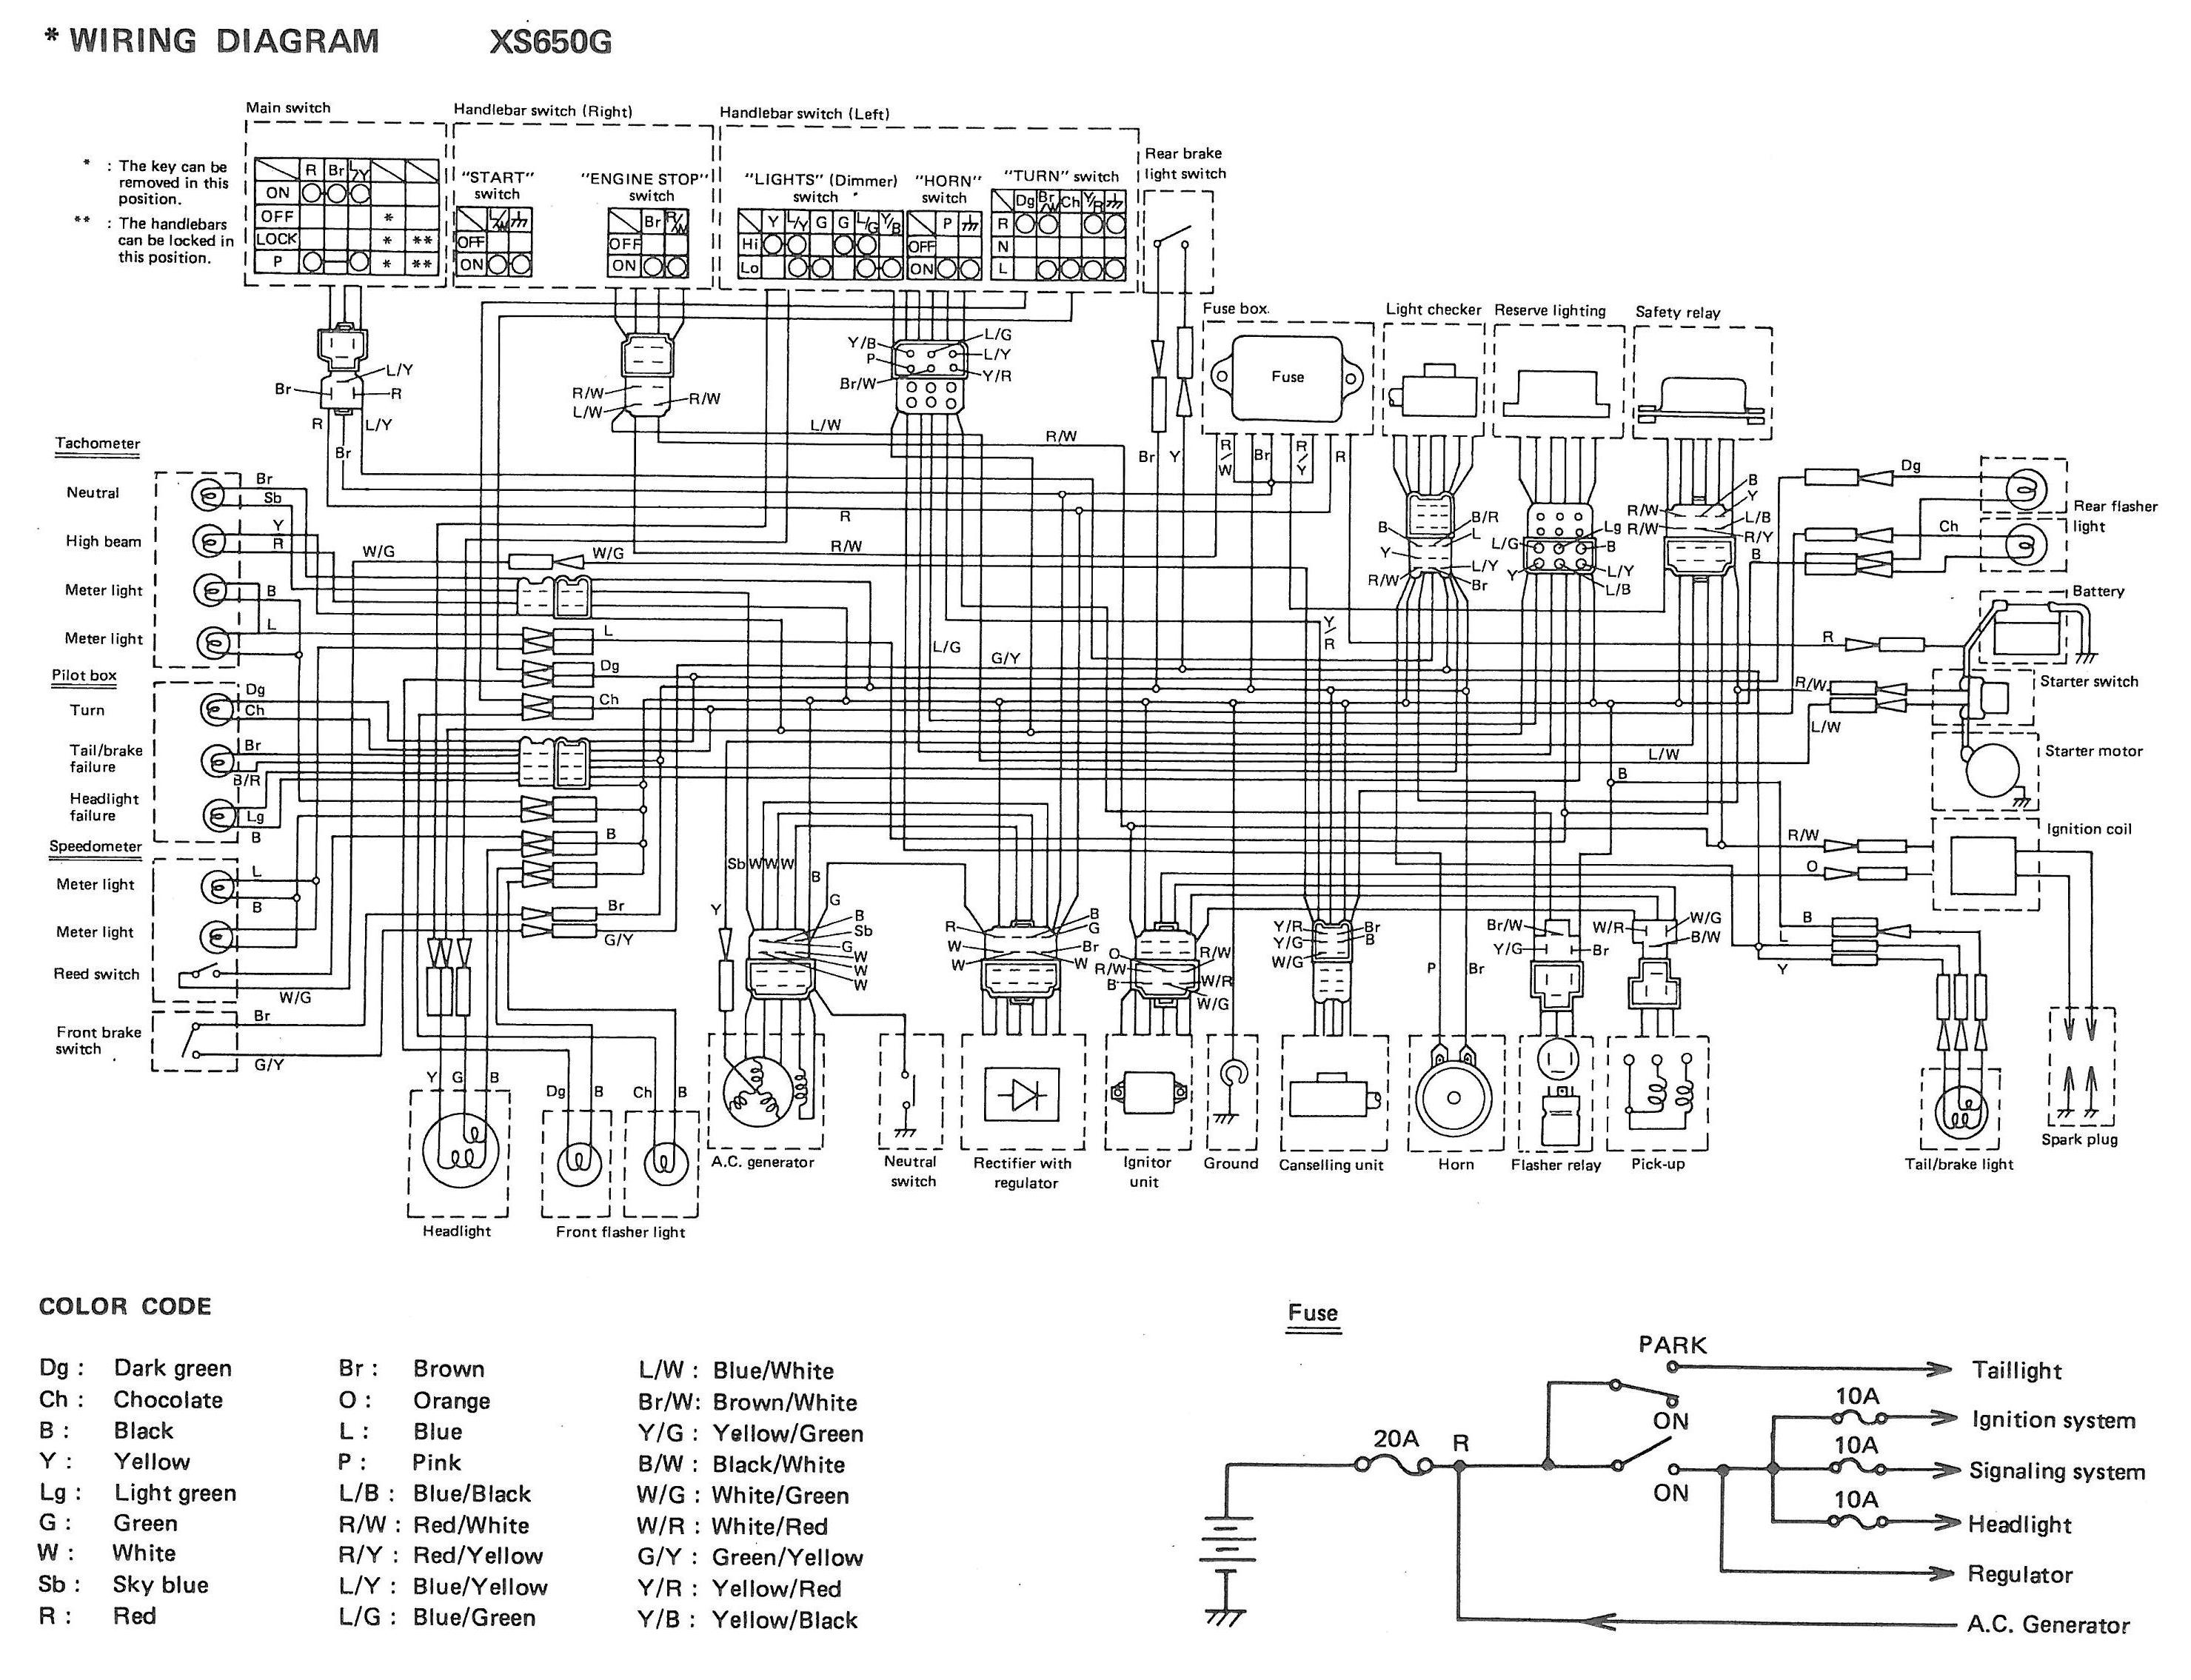 xs650 80 xs650g and sg wiring diagrams thexscafe rh thexscafedotcom wordpress com yamaha xs360 wiring diagram 1981 Yamaha XS400